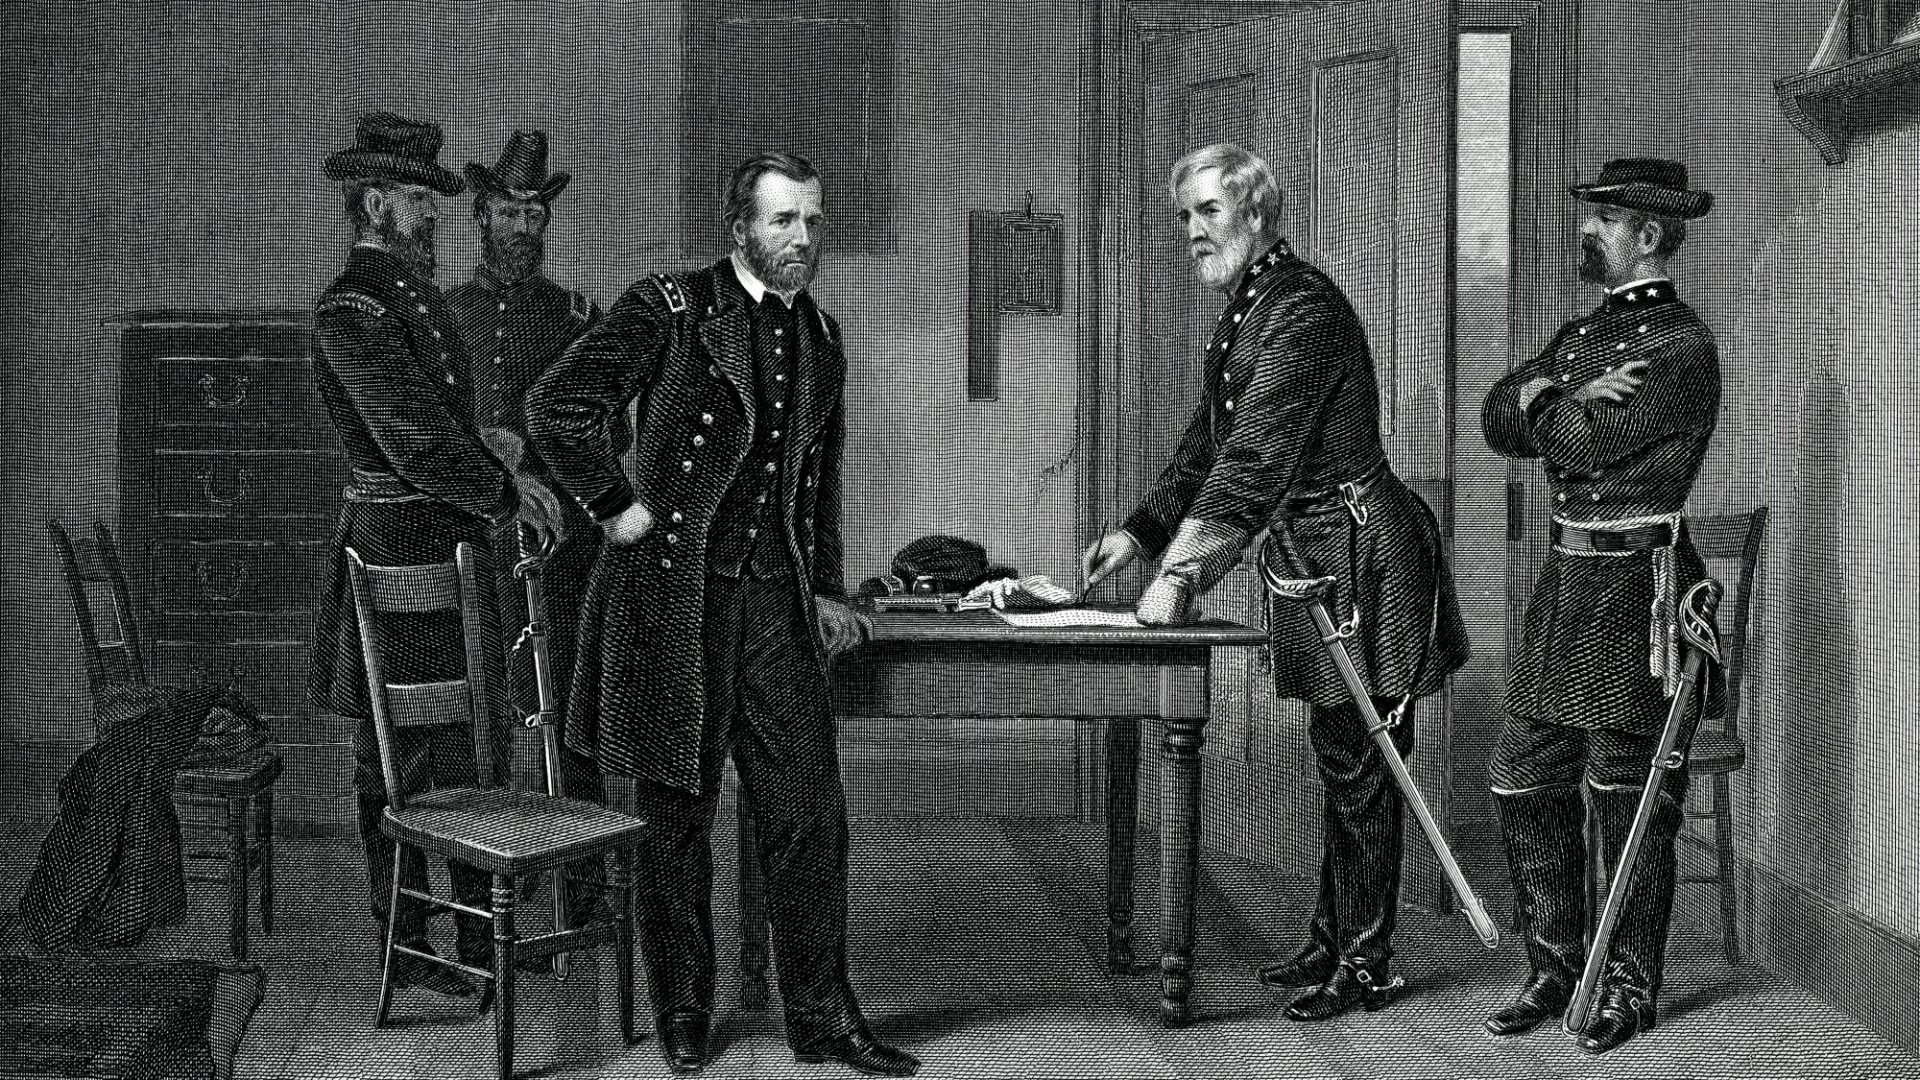 7 Negotiation Lessons From Ulysses S. Grant and Robert E. Lee at Appomattox